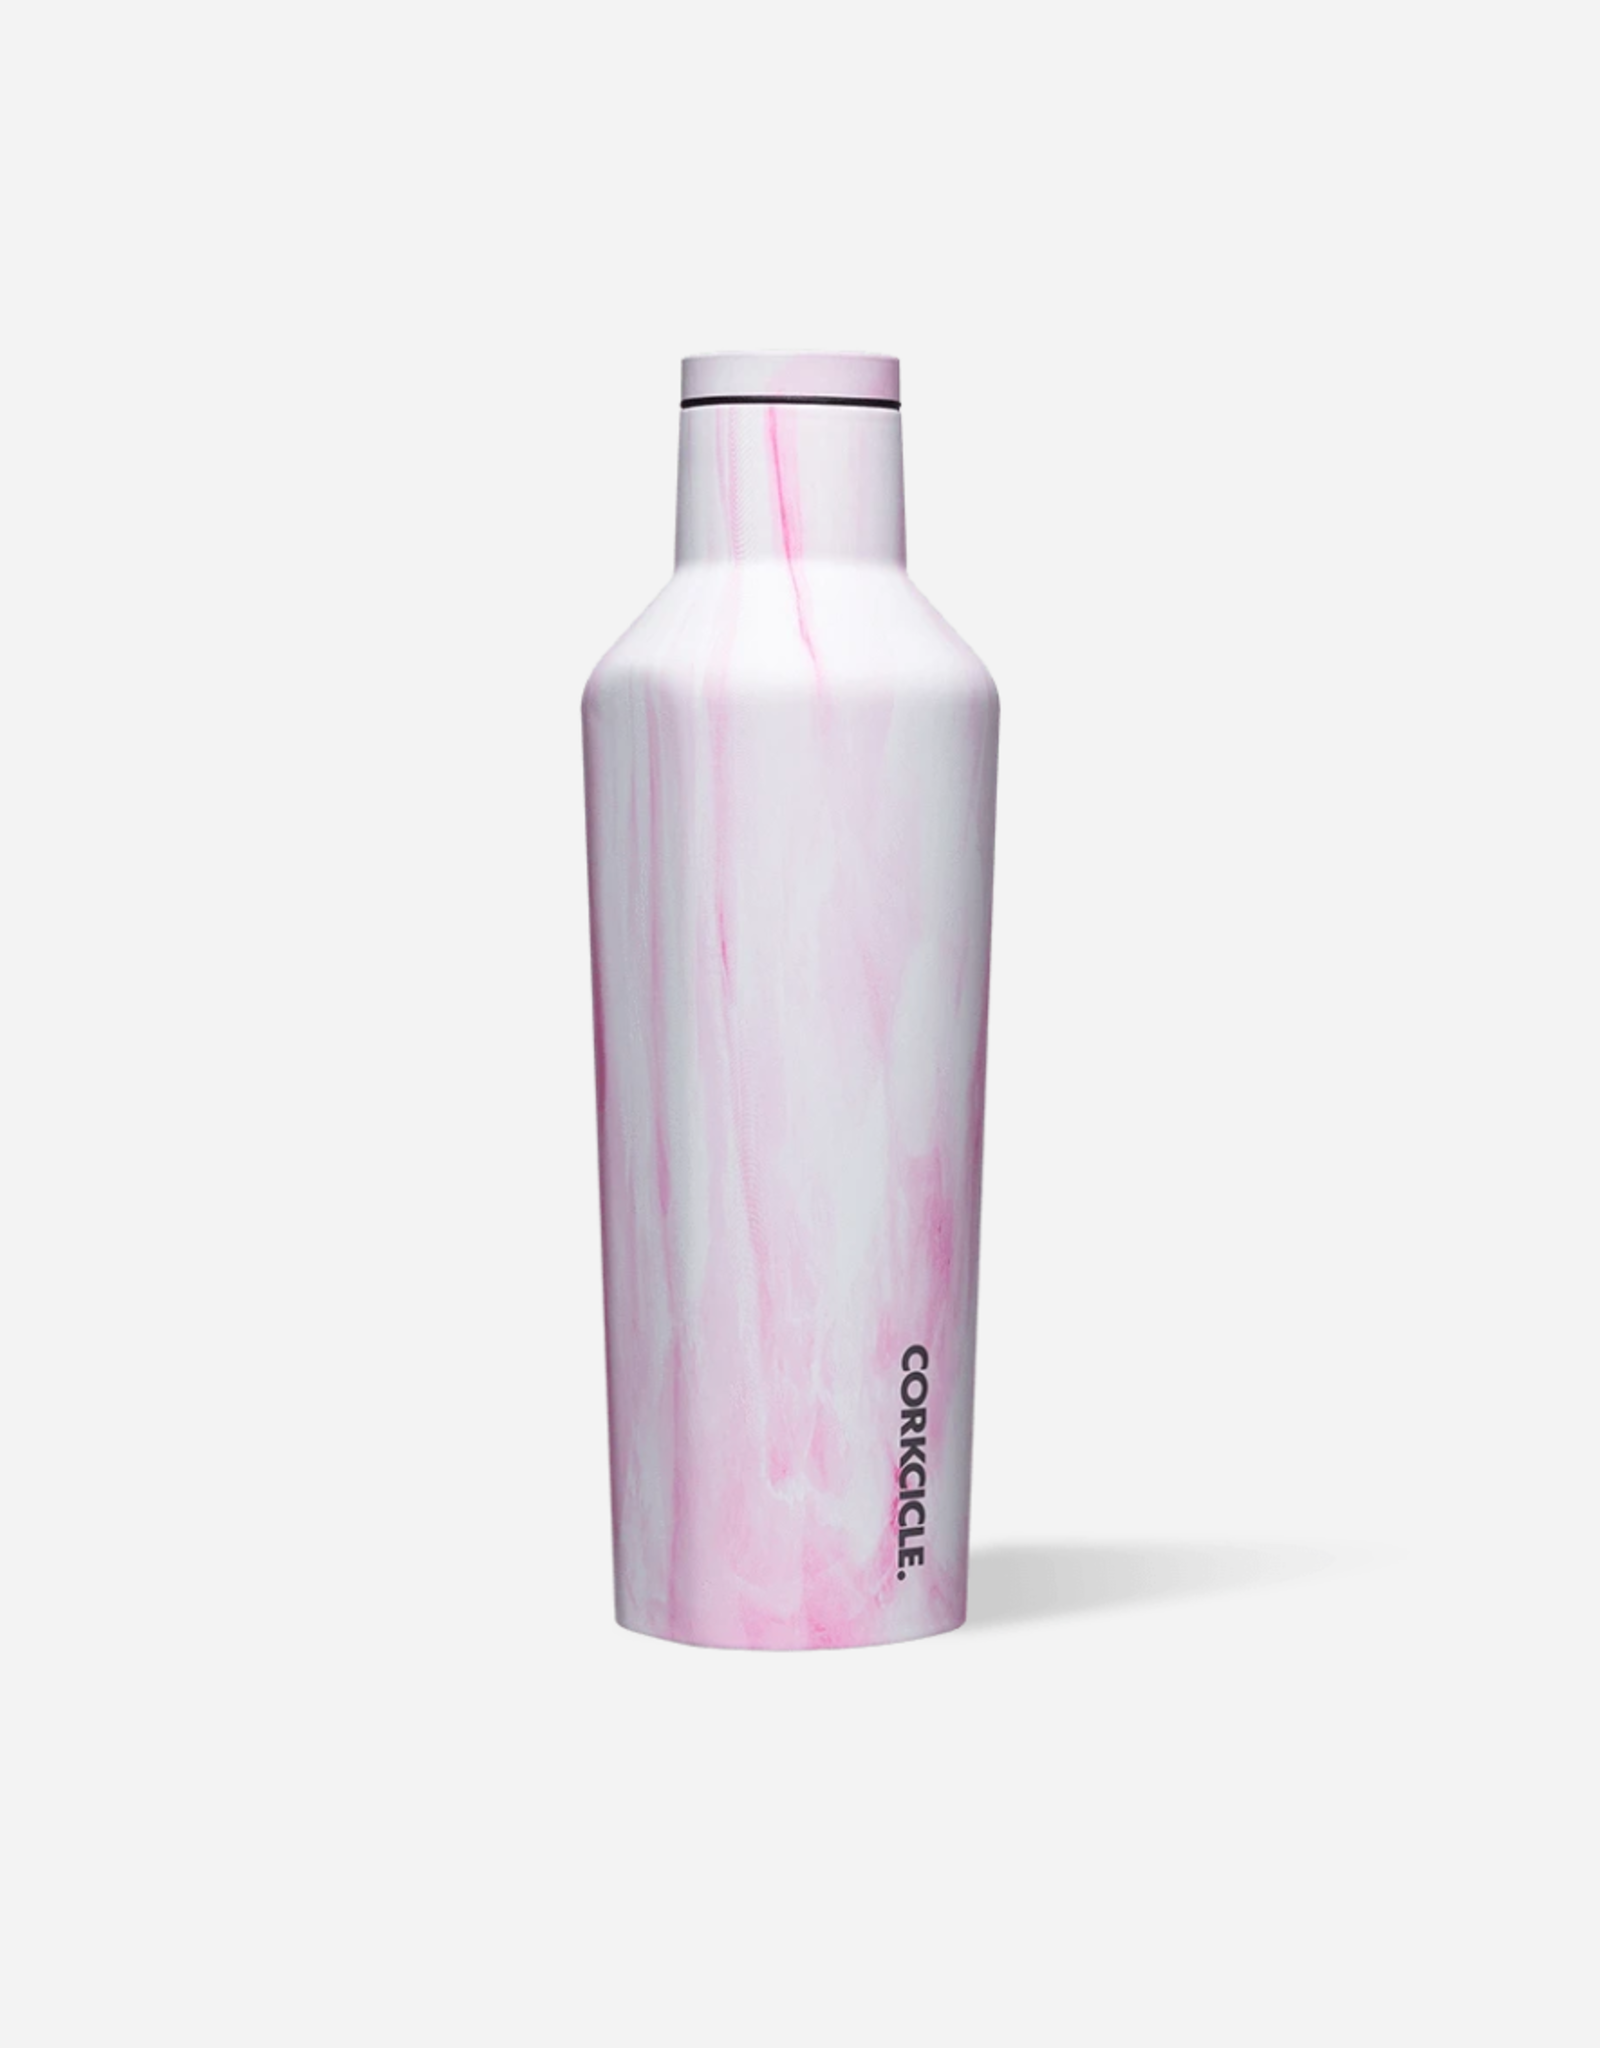 Corkcicle Corkcicle Pink Marble Canteen 16 oz